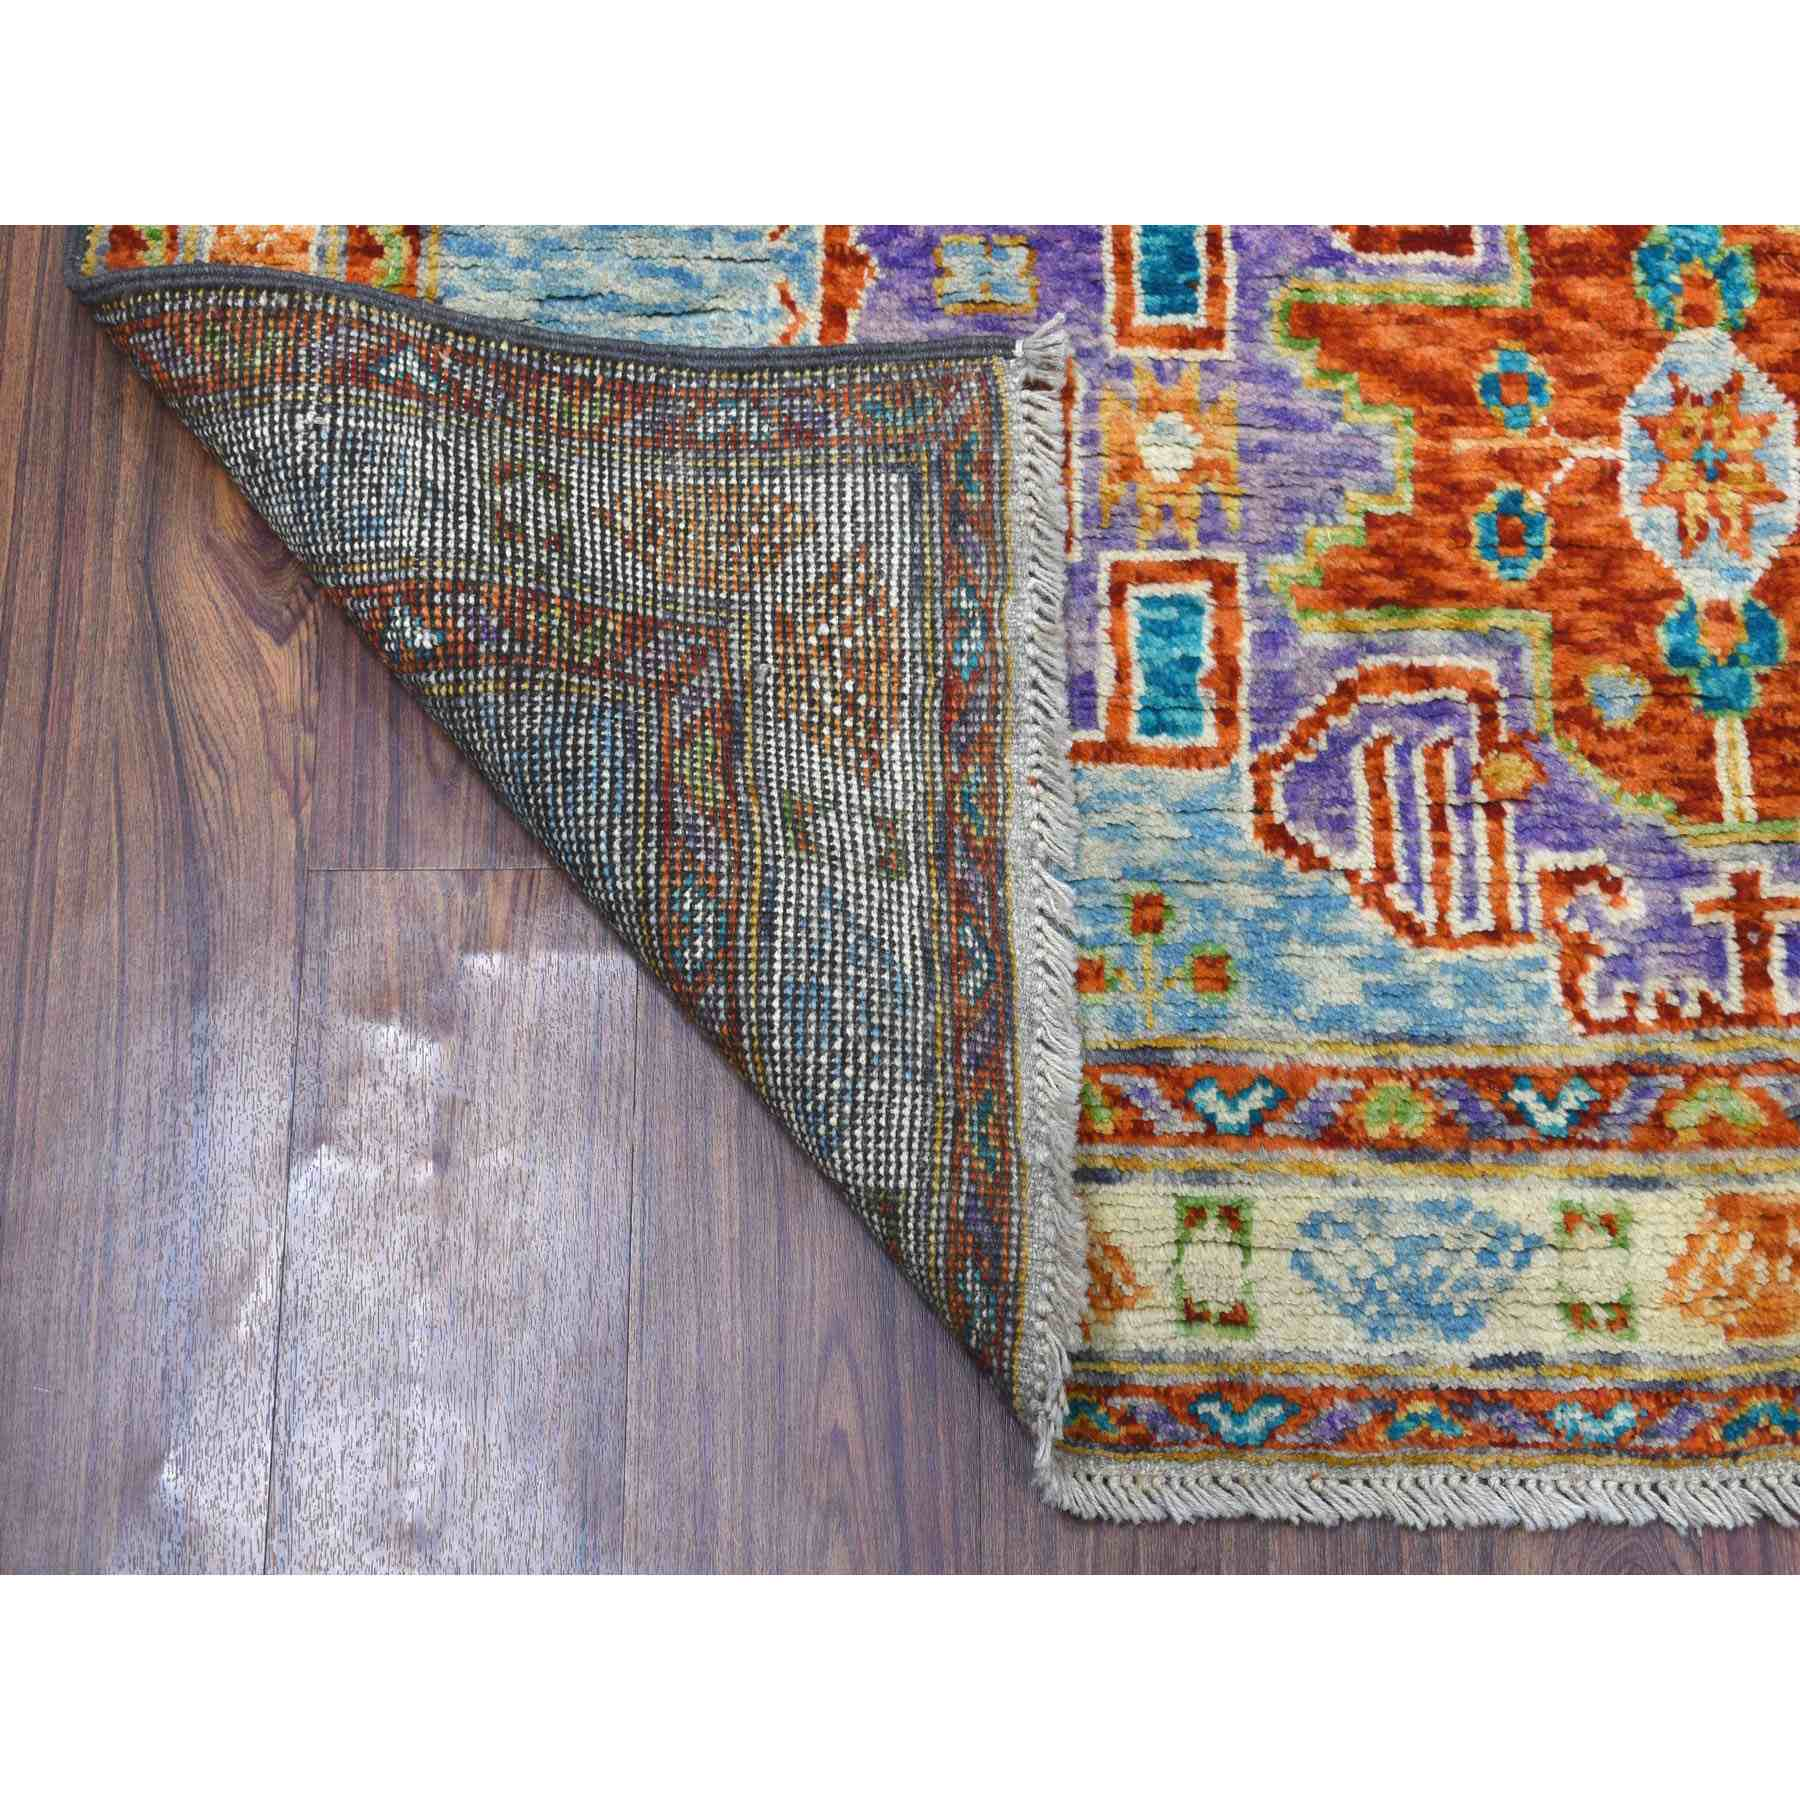 Tribal-Geometric-Hand-Knotted-Rug-265765